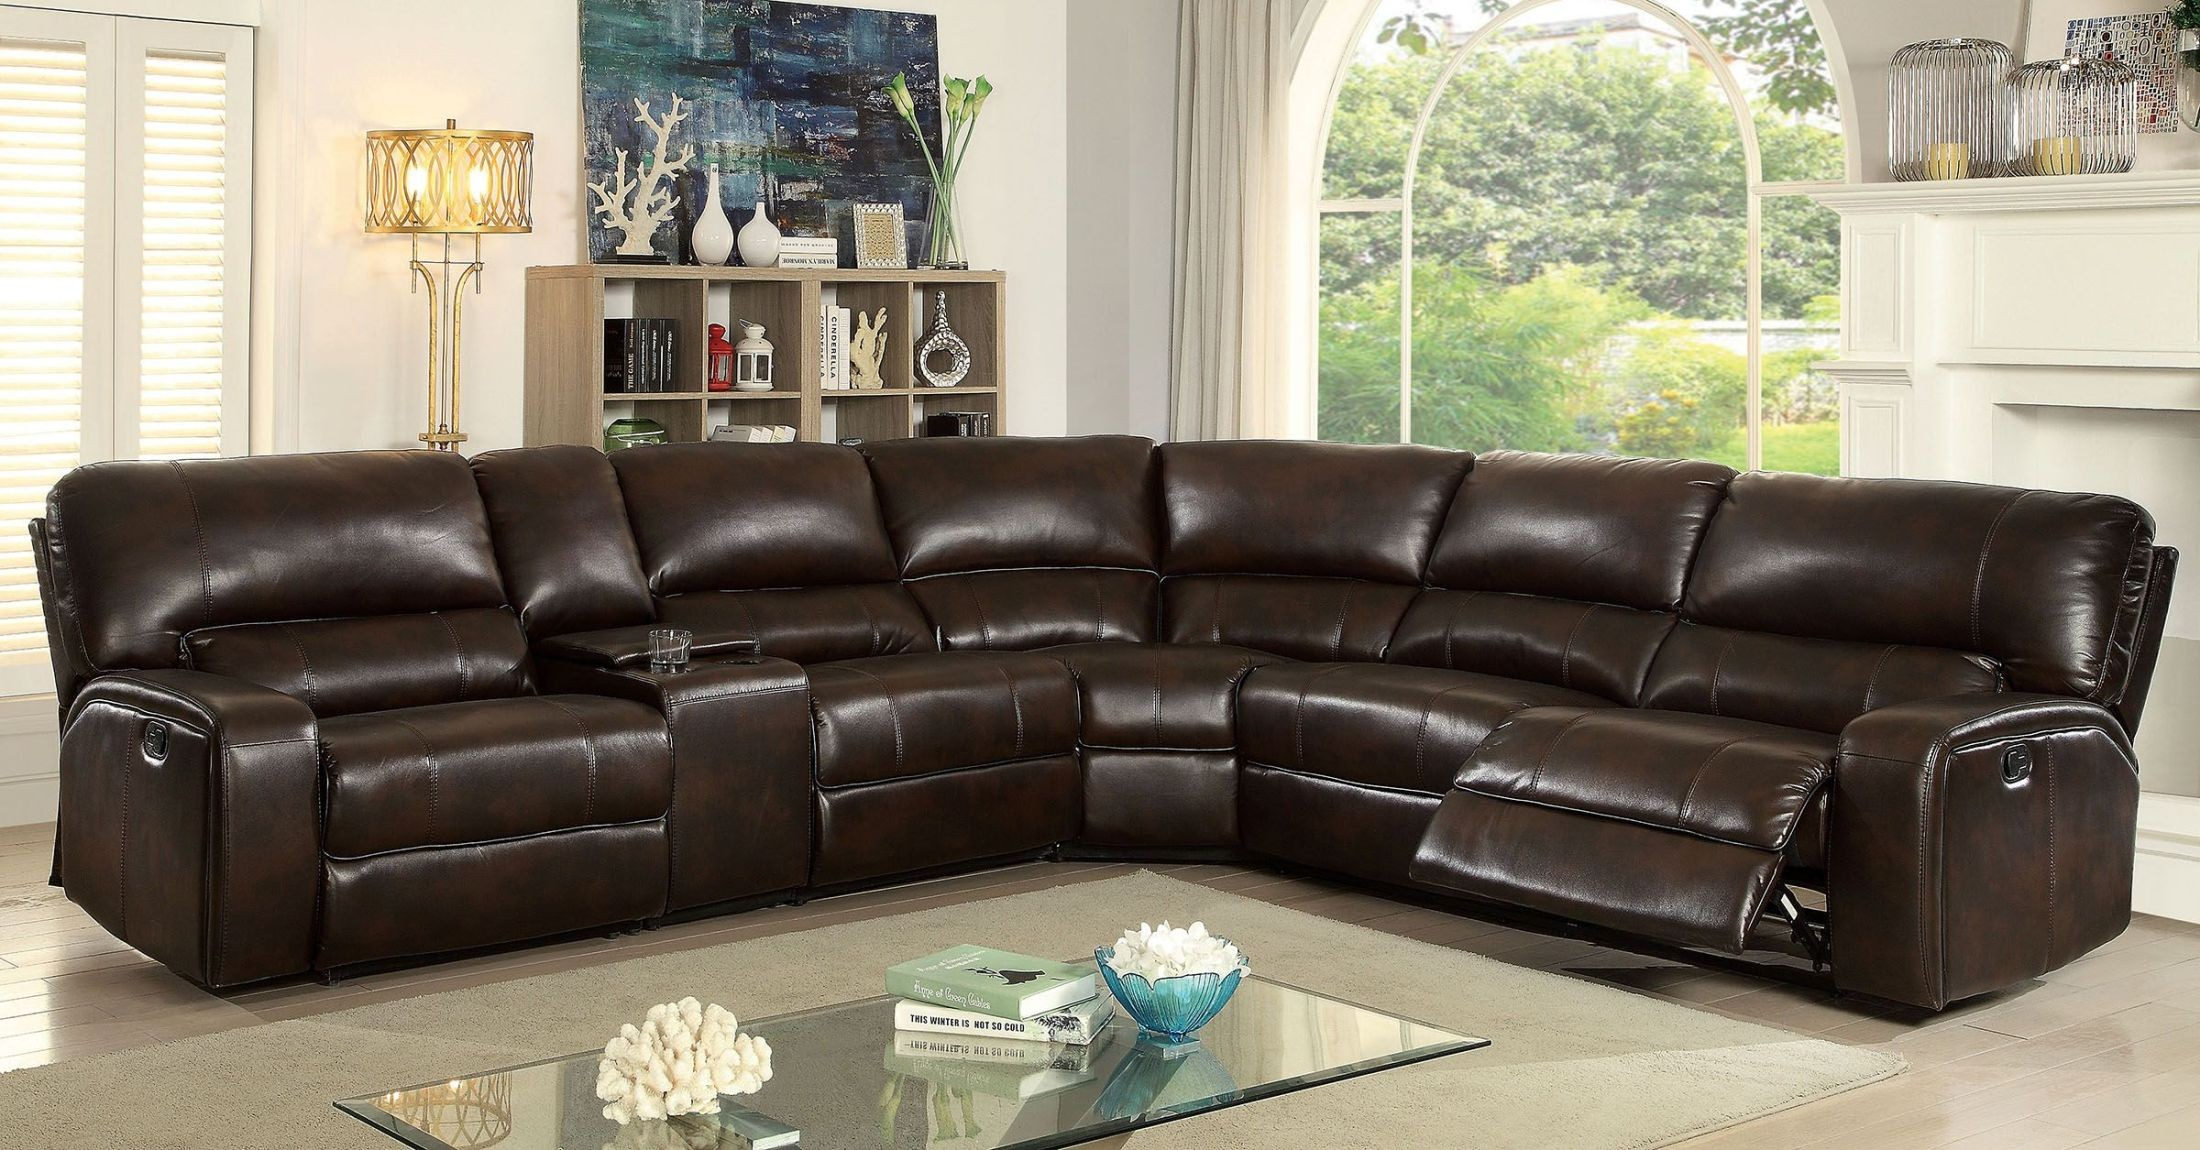 jolene brown reclining sectional with console from furniture of america coleman furniture. Black Bedroom Furniture Sets. Home Design Ideas